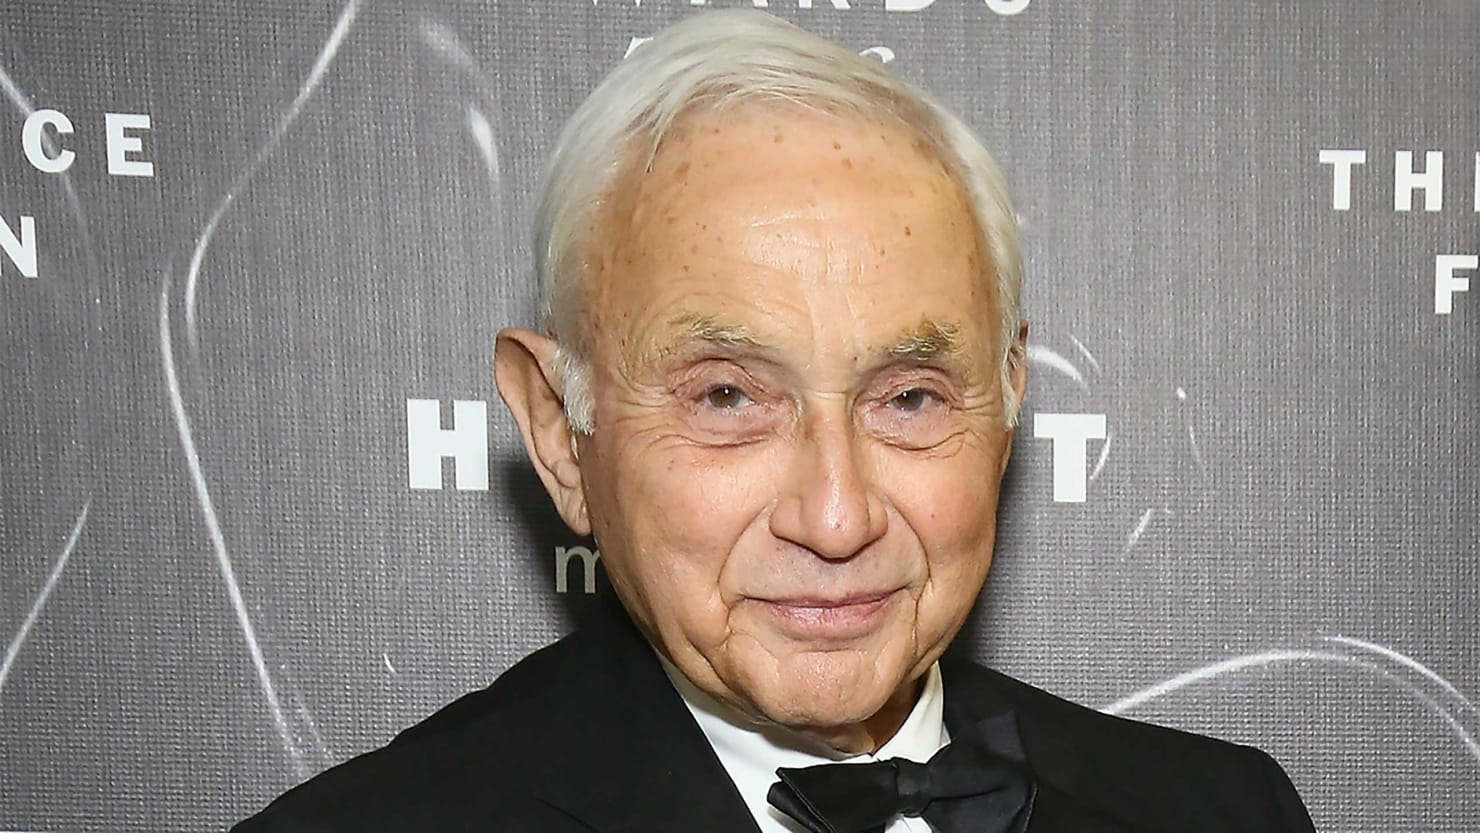 Ohio's Richest Republican Backer Leslie Wexner Quits Party After Visit From President Obama